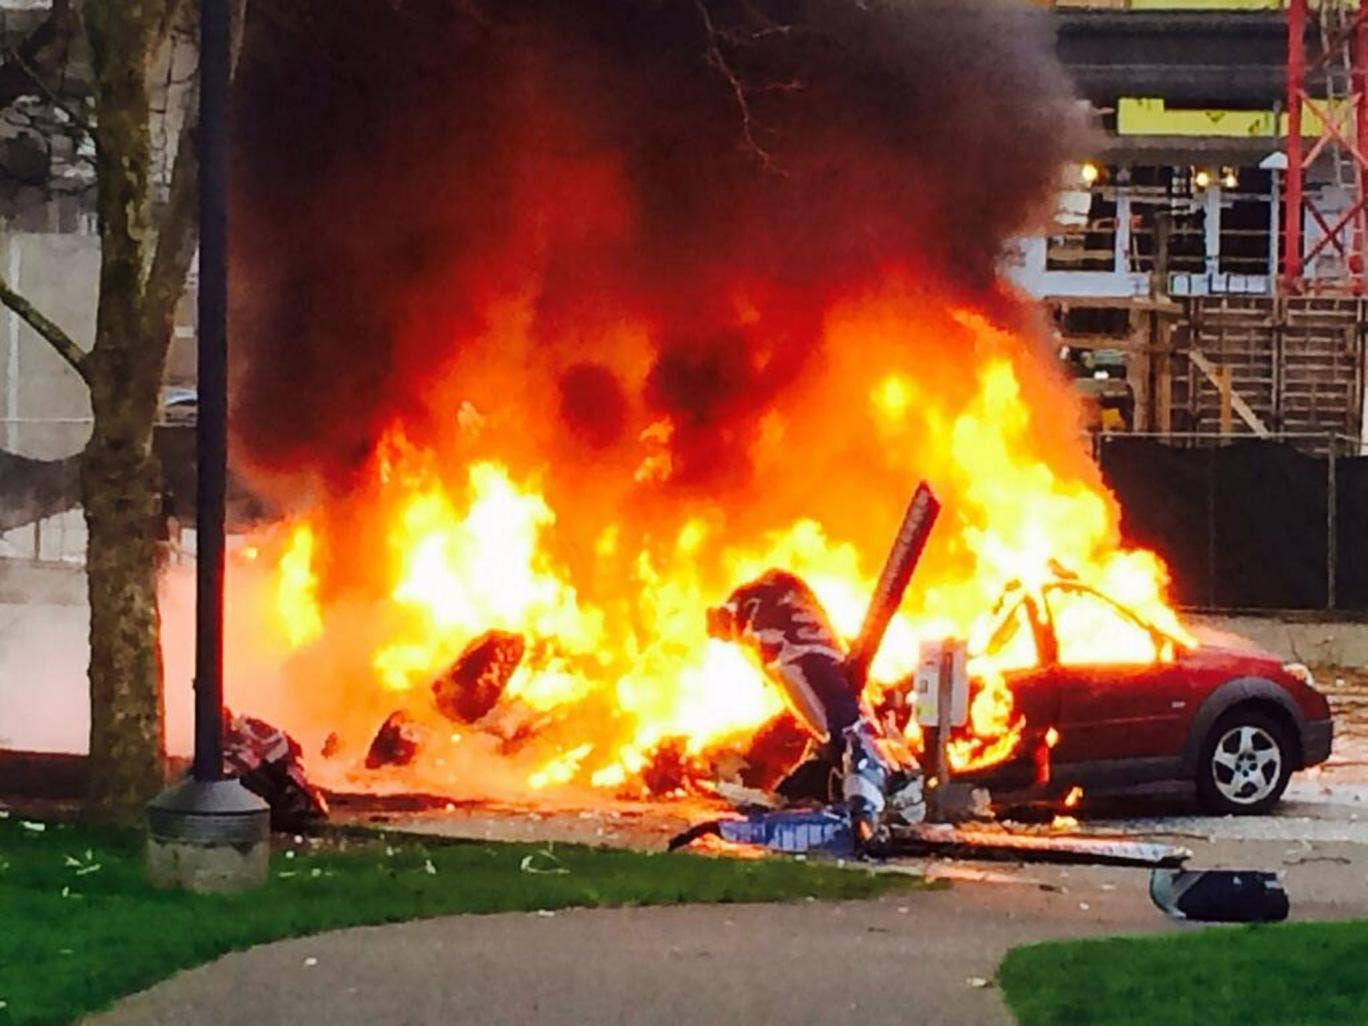 A car burns at the scene of a helicopter crash outside the KOMO-TV studios near the space needle in Seattle